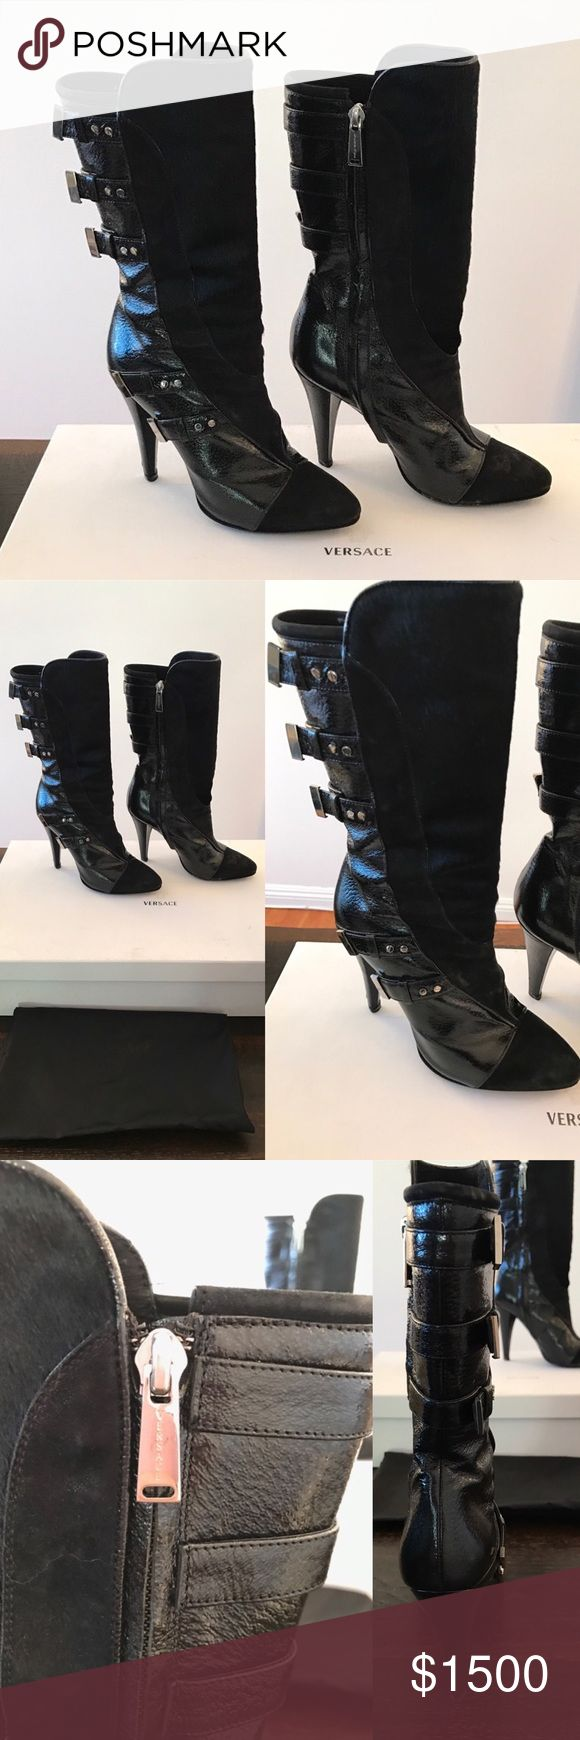 Gianni Versace calf length black suede boots Gianni Versace calf length black and suede boots with metal buckles  Size 5 1/2 Retail Price $2800 Sale Price $1500 Box and bag included Versace Shoes Heeled Boots